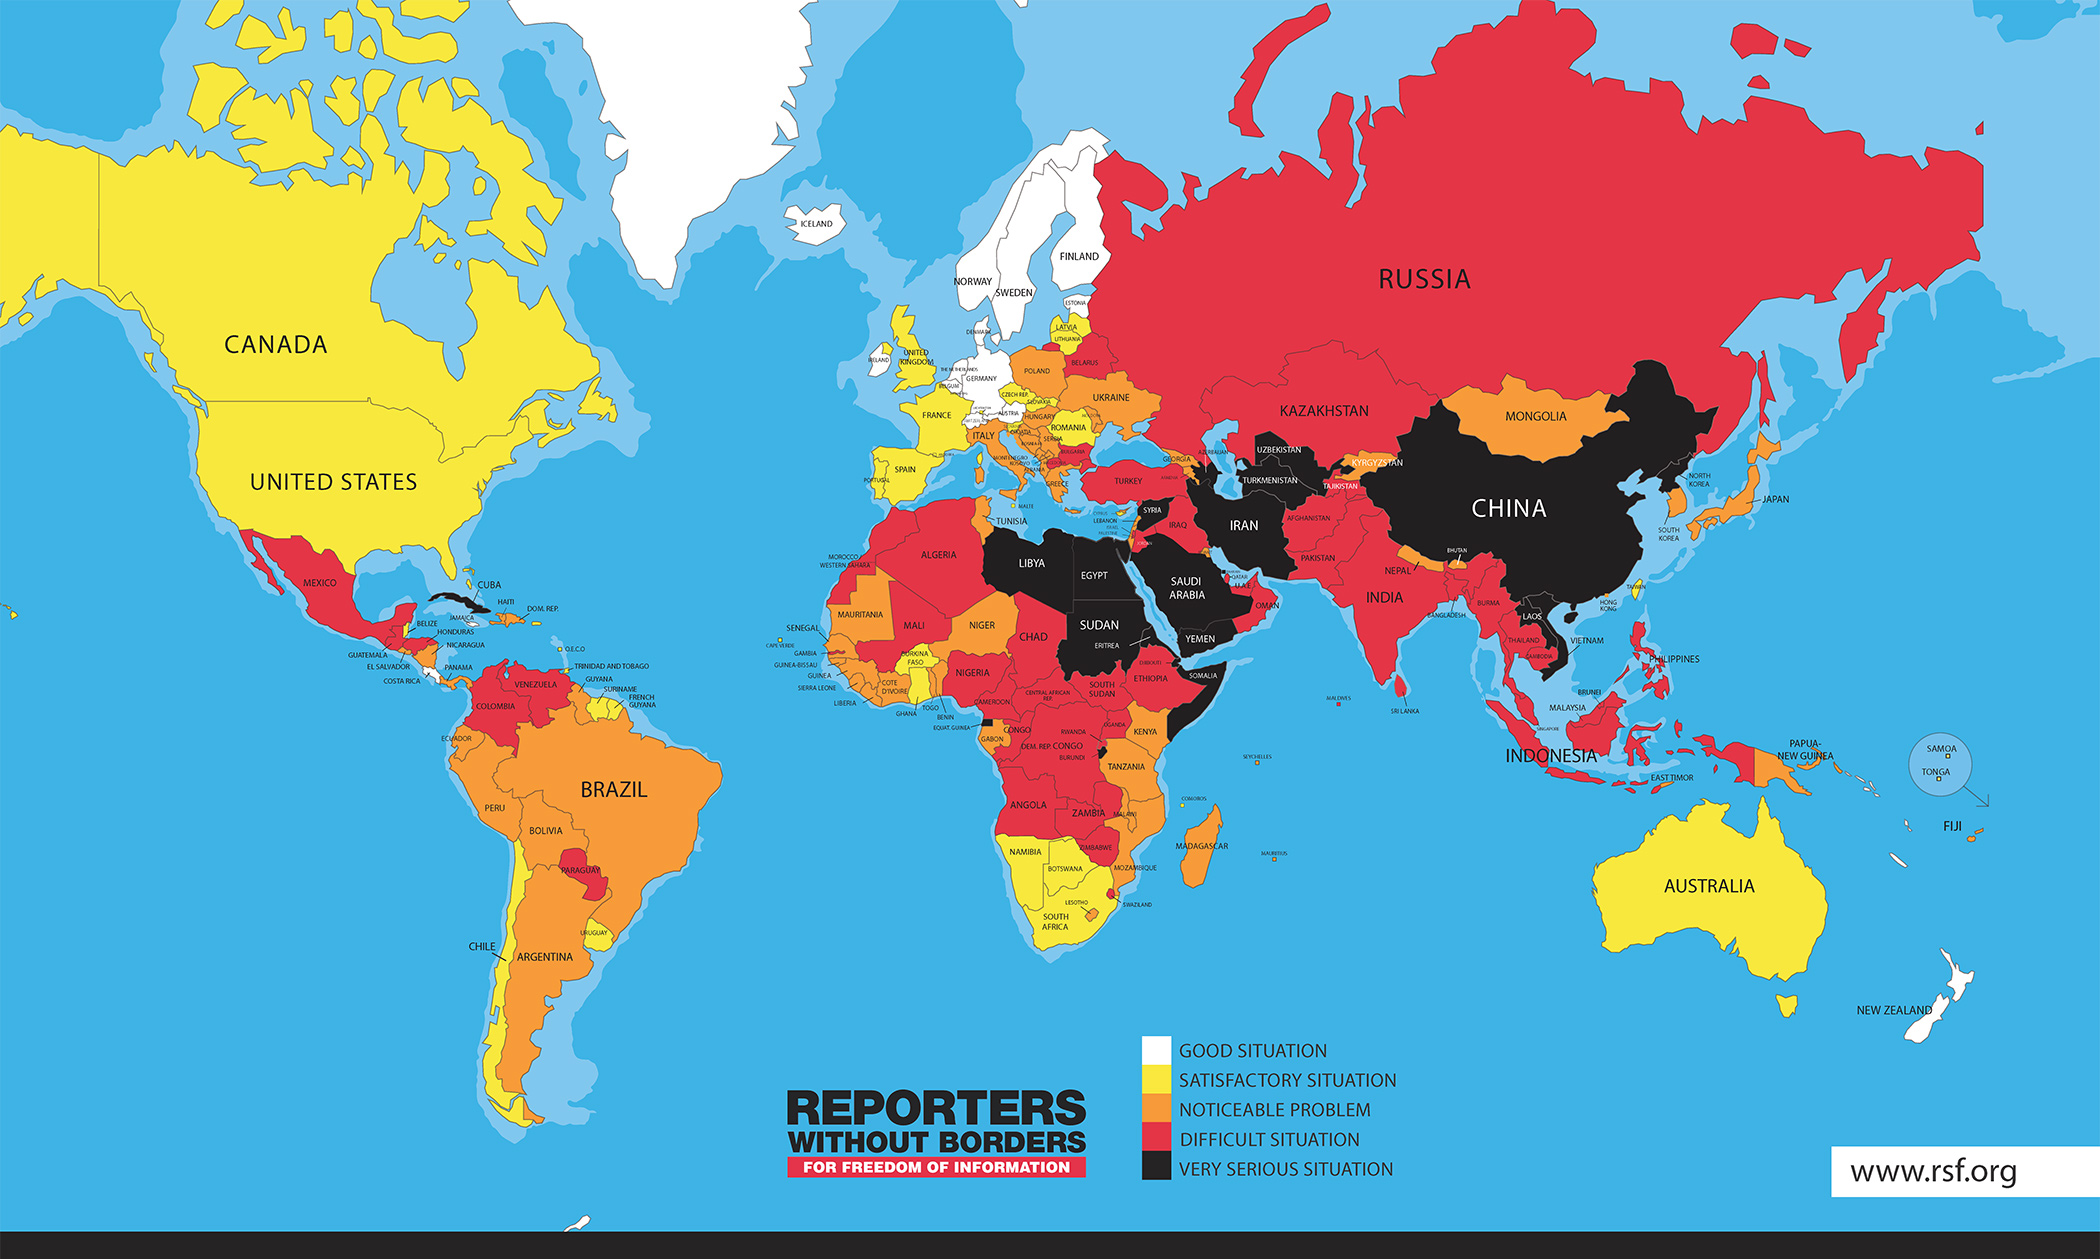 RSF's index stresses threats against journalists in Asia, audiences' need for free press